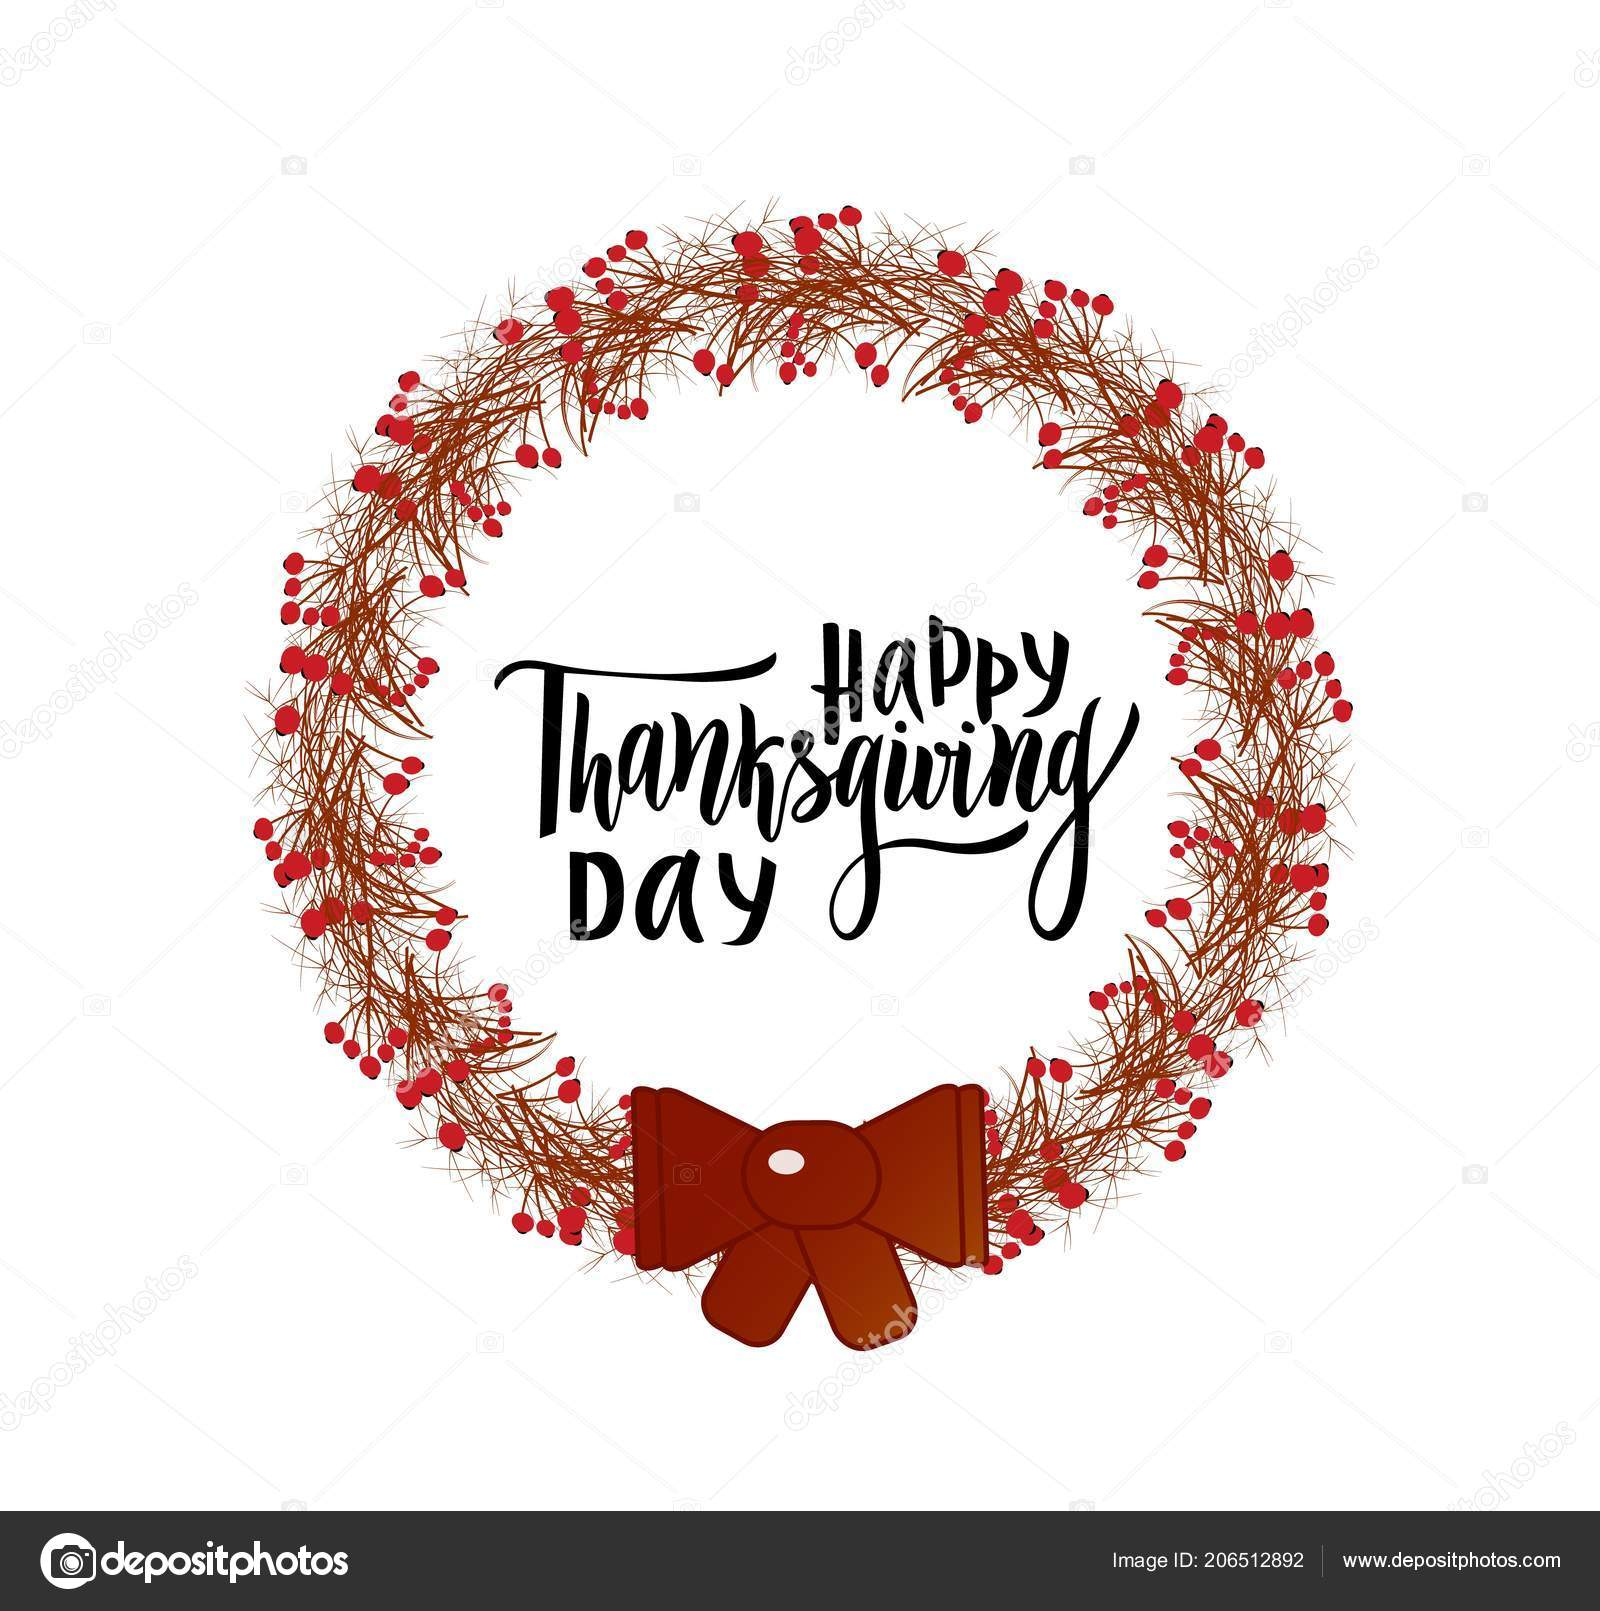 Happy Thanksgiving Day Greeting Lettering Phrase Wreath Branches Berries Modern Stock Vector